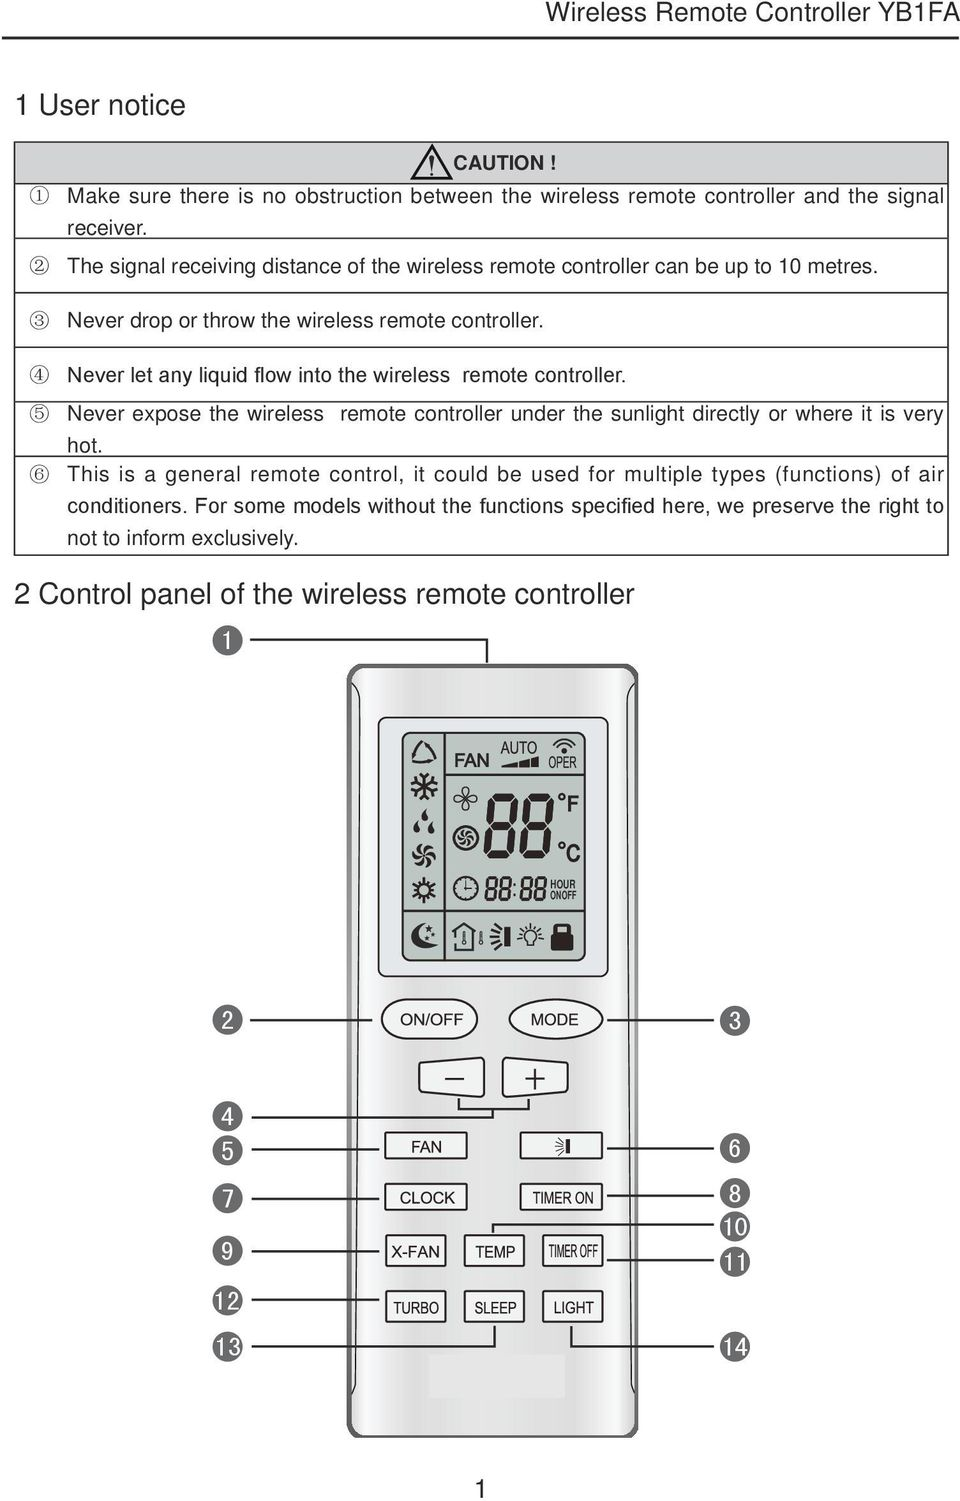 4 Never let any liquid flow into the wireless remote controller. 5 Never expose the wireless remote controller under the sunlight directly or where it is very hot.